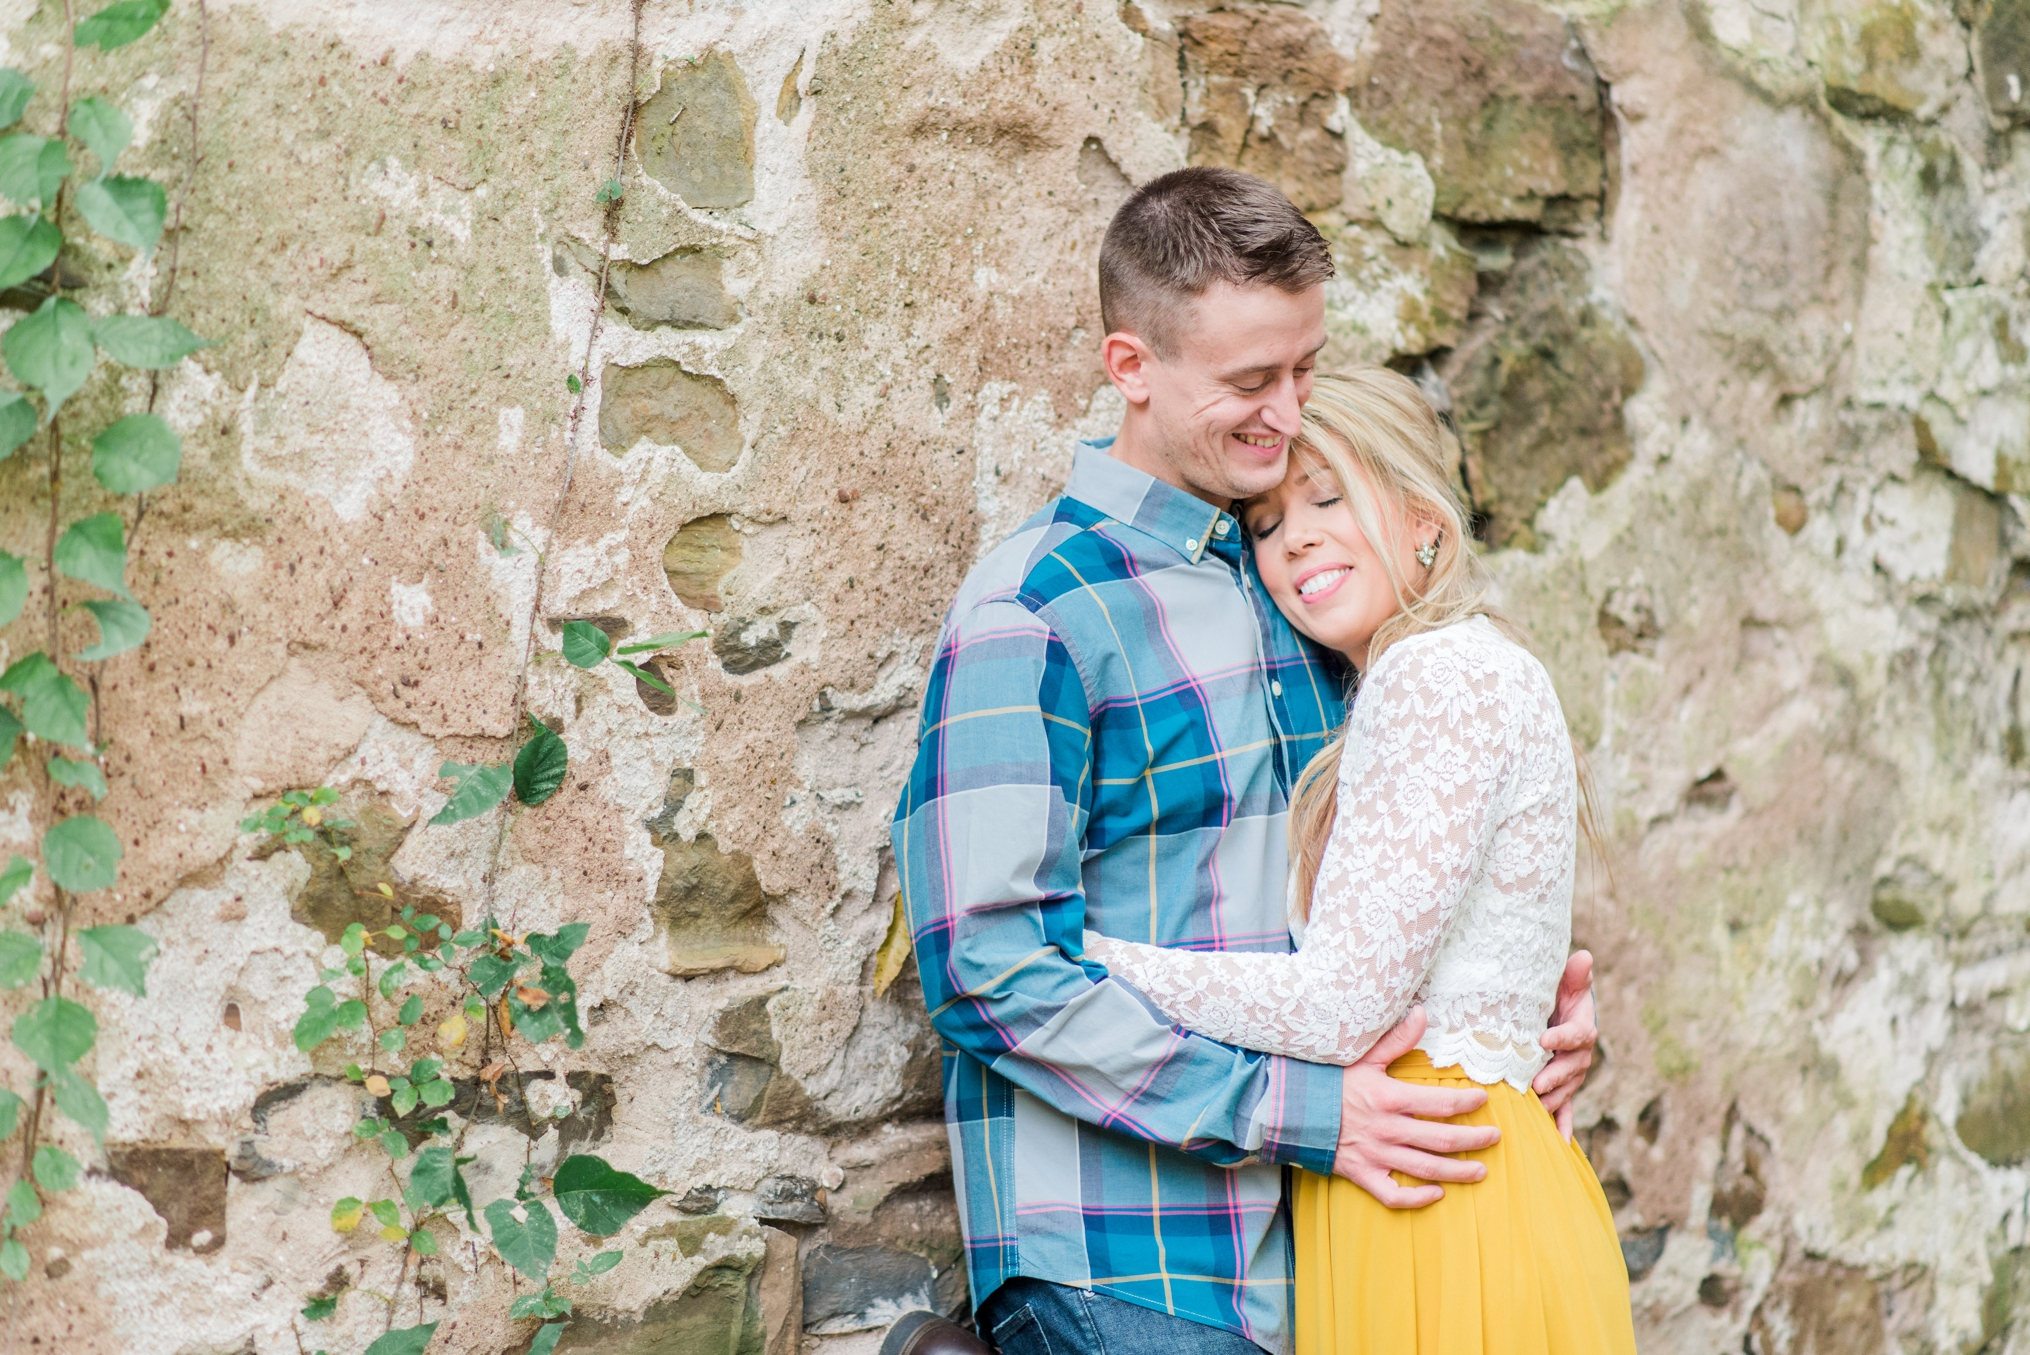 Fall Engagement Session Collegeville, PA - Krista Brackin Photography_0007.jpg